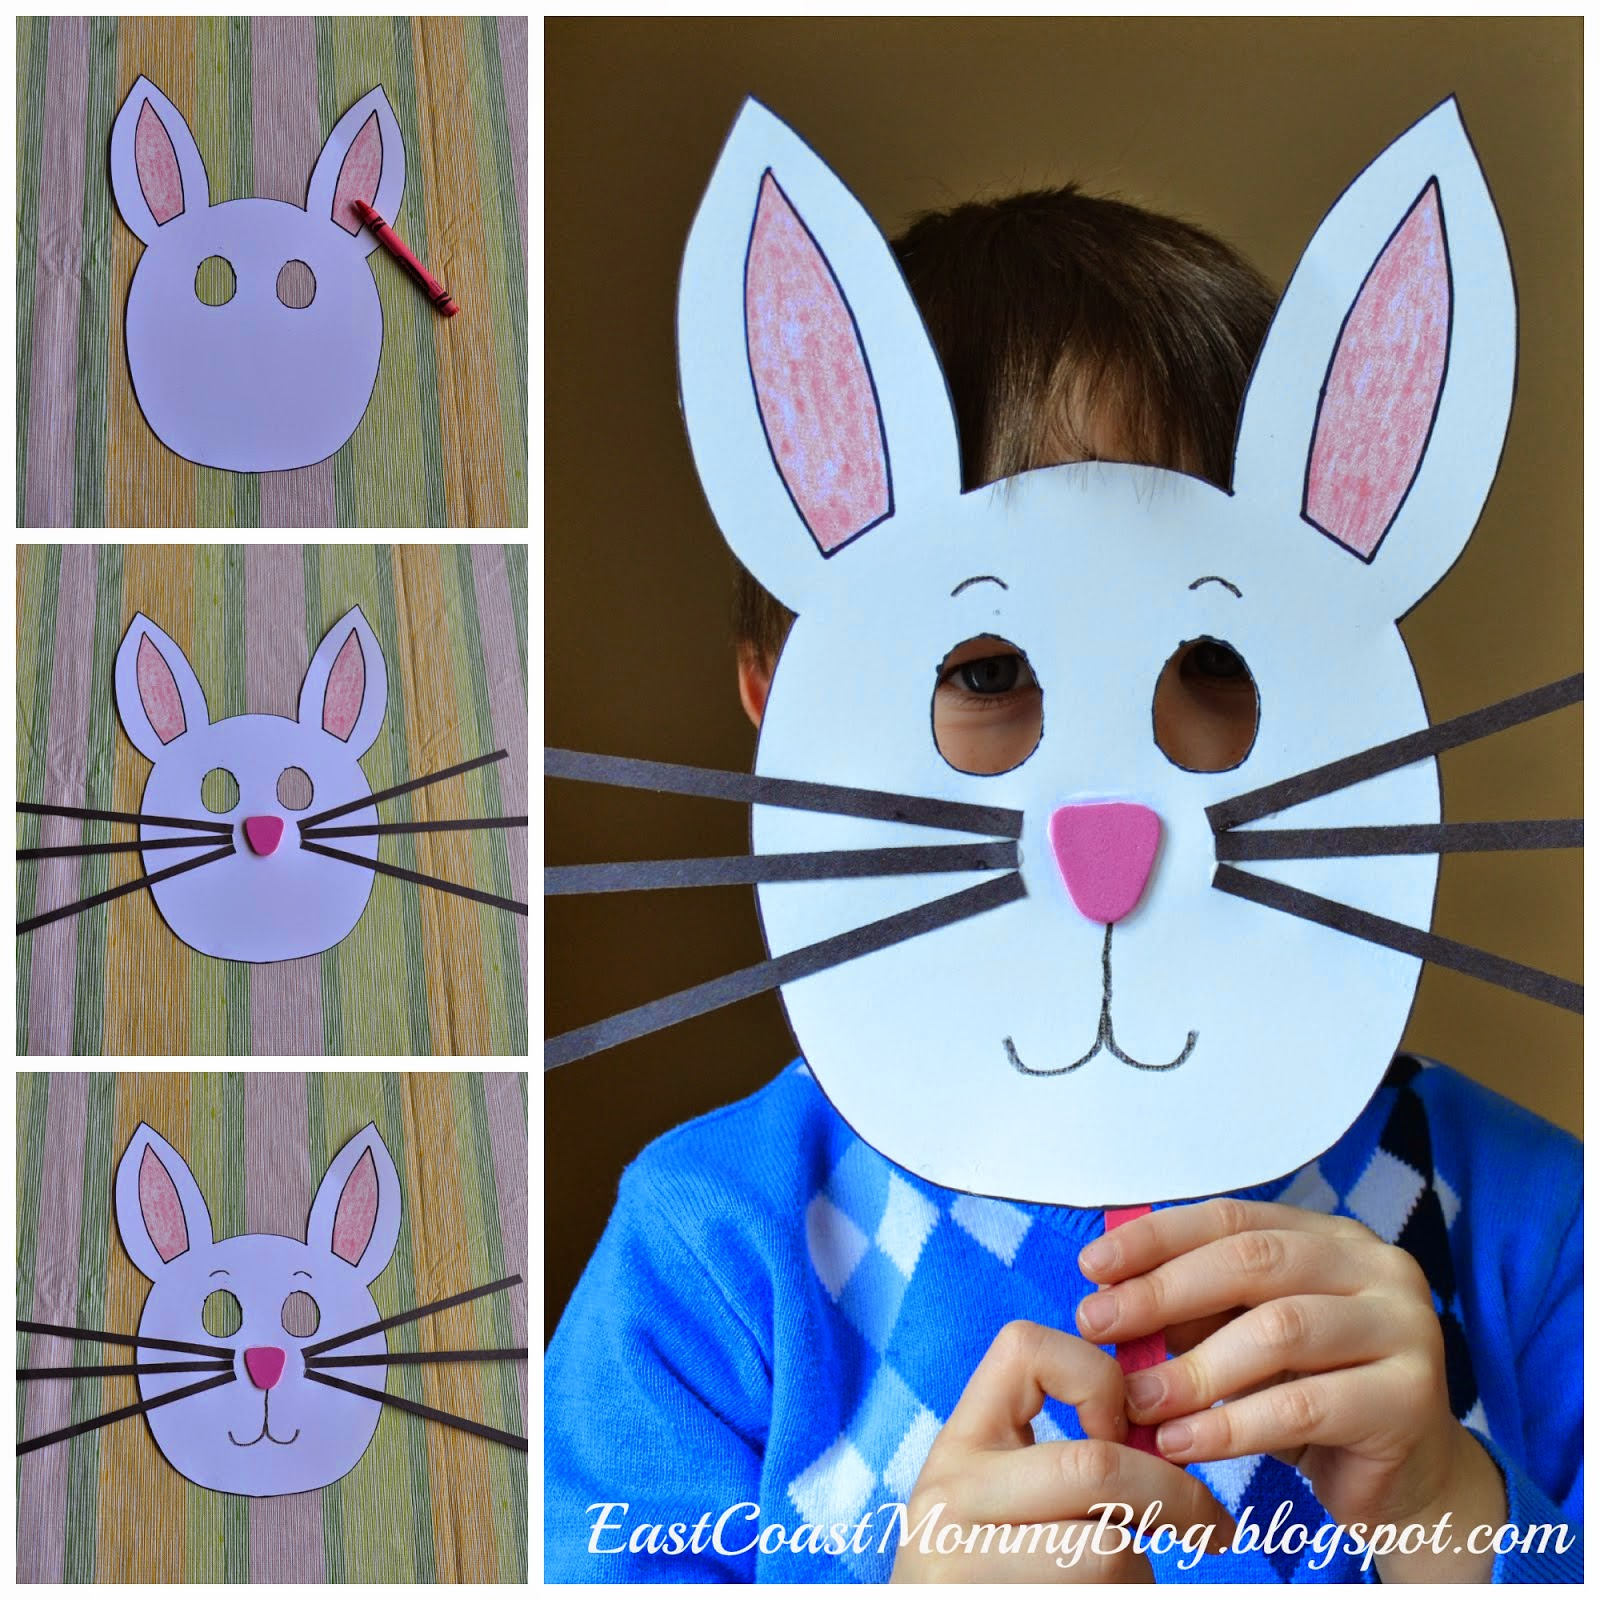 East Coast Mommy: Bunny Mask {Preschool Craft} - Free Printable Easter Masks